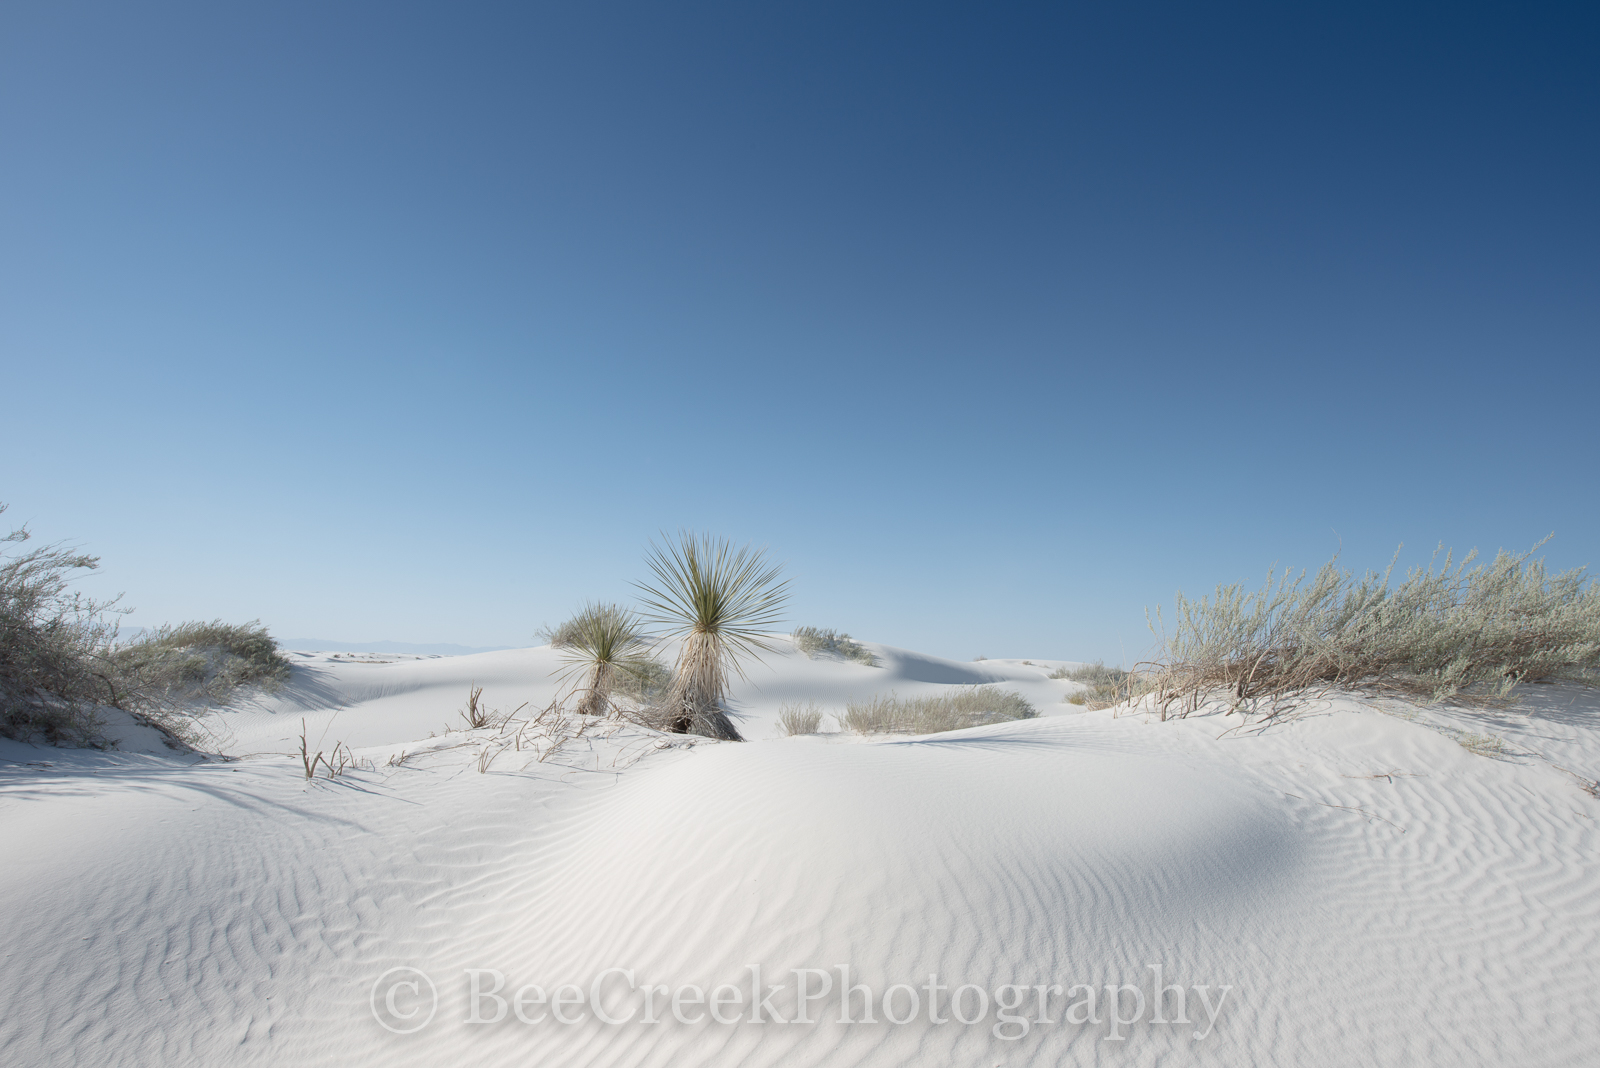 Alamagorda nm, New Mexico, New Mexico Parks, White Sand National Monument, Yucca in White sands, beautiful photos of white sands, dunes, flow of sand, gypsum, images of White Sands, magnificent white , photo